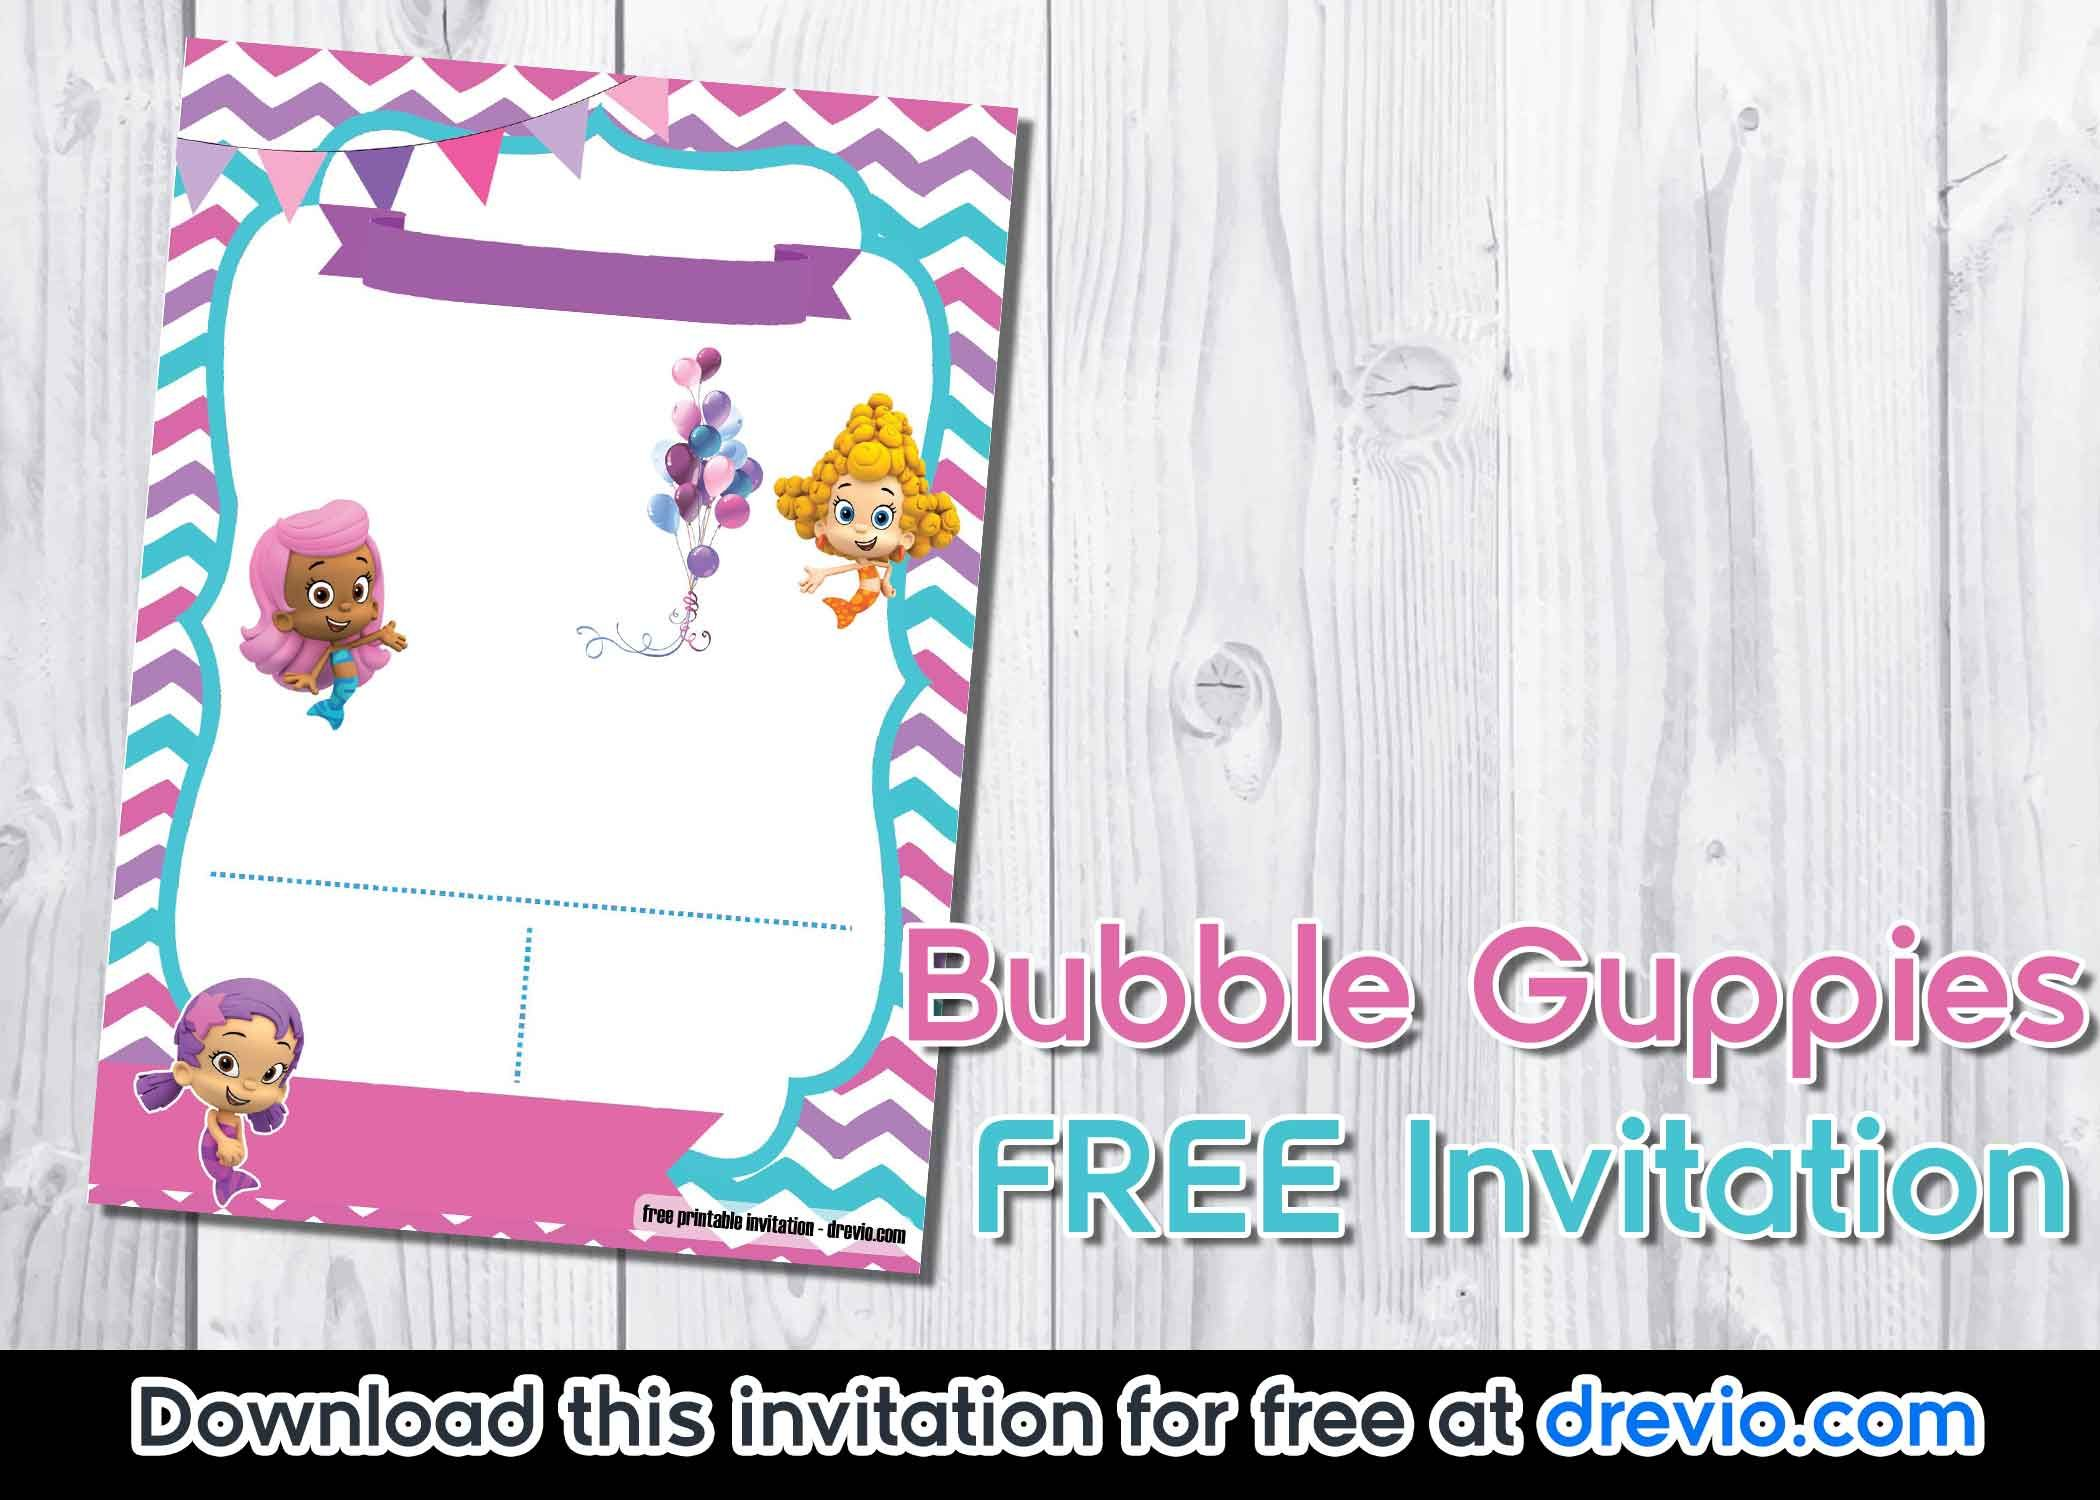 FREE Bubble Guppies invitation template (With images ...